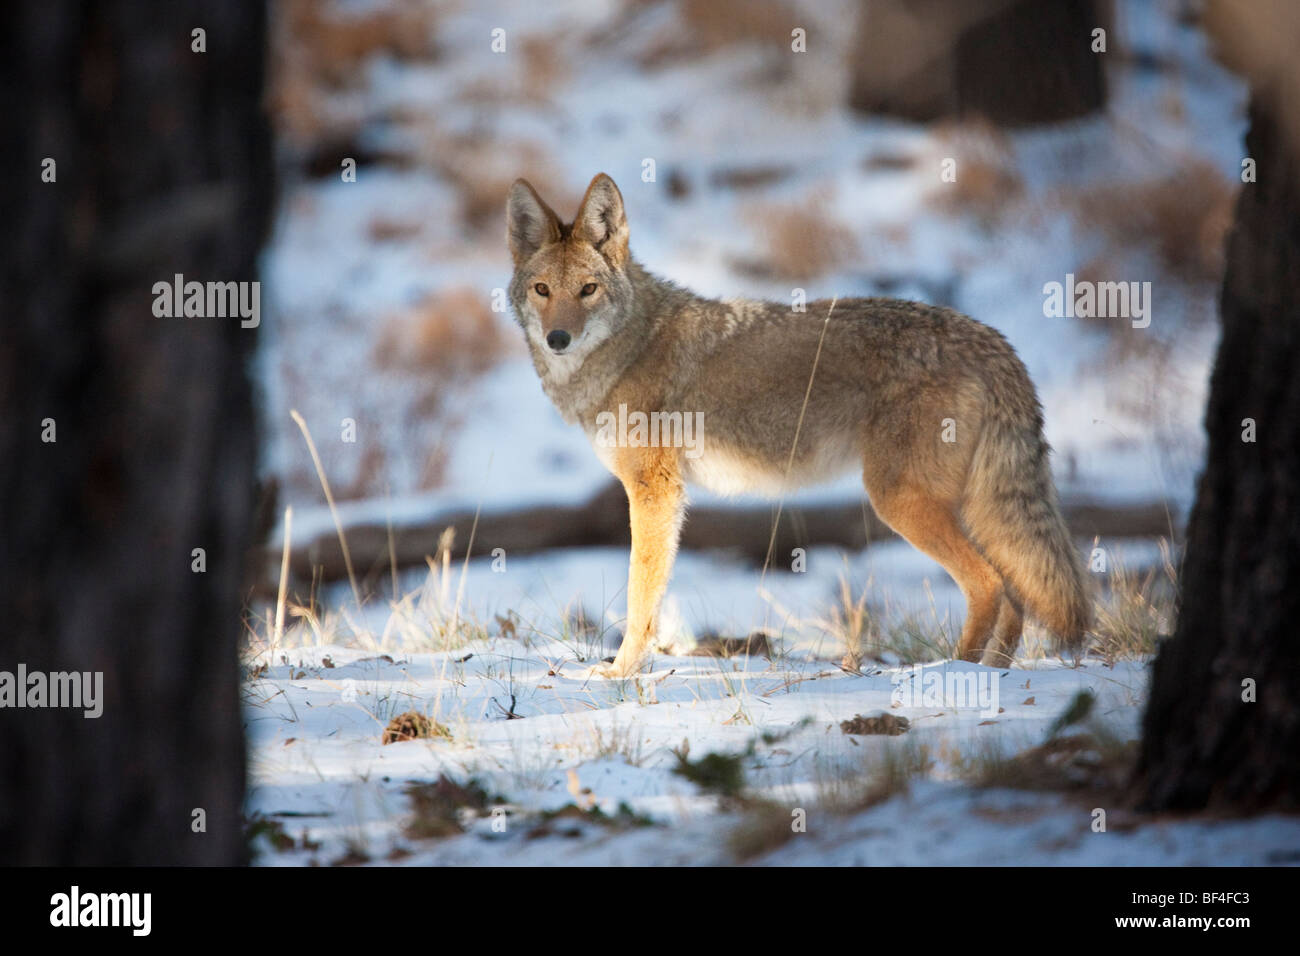 Coyote (Canis latrans) in the snow at sunrise, Grand Canyon National Park, North Rim, Arizona, USA - Stock Image